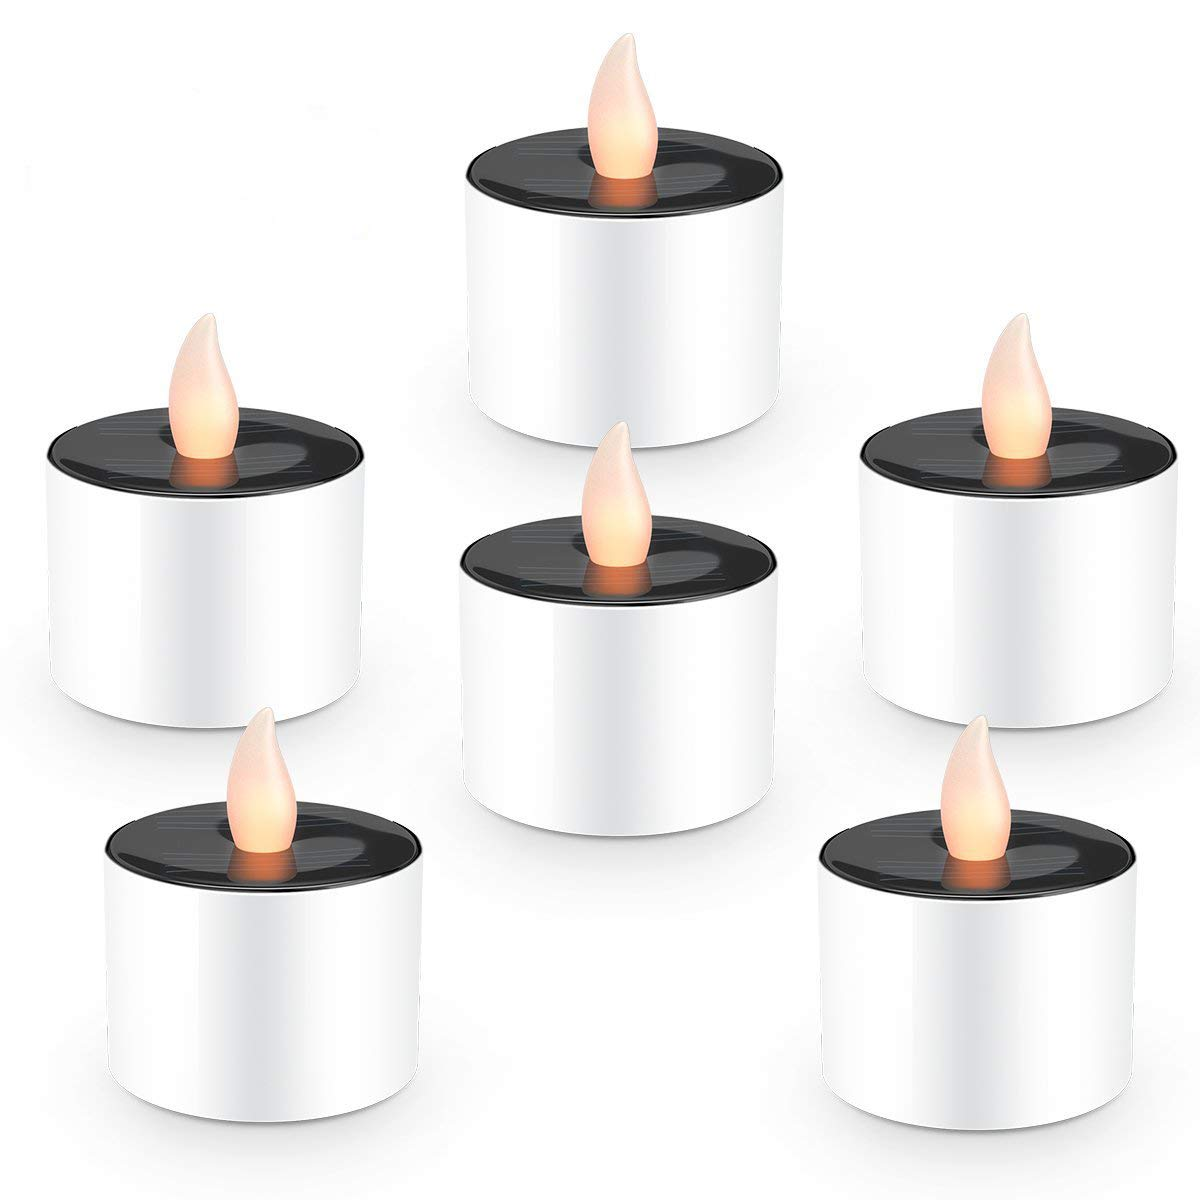 Solar Candles Flameless Rechargeable Candles LED Tea Lights Candles Battery Operated Upgraded Solar Power Waterproof Warm White Candle Set of 6 for Home Bar Bedroom Living Room Garden Outdoor Indoor by EXPOWER